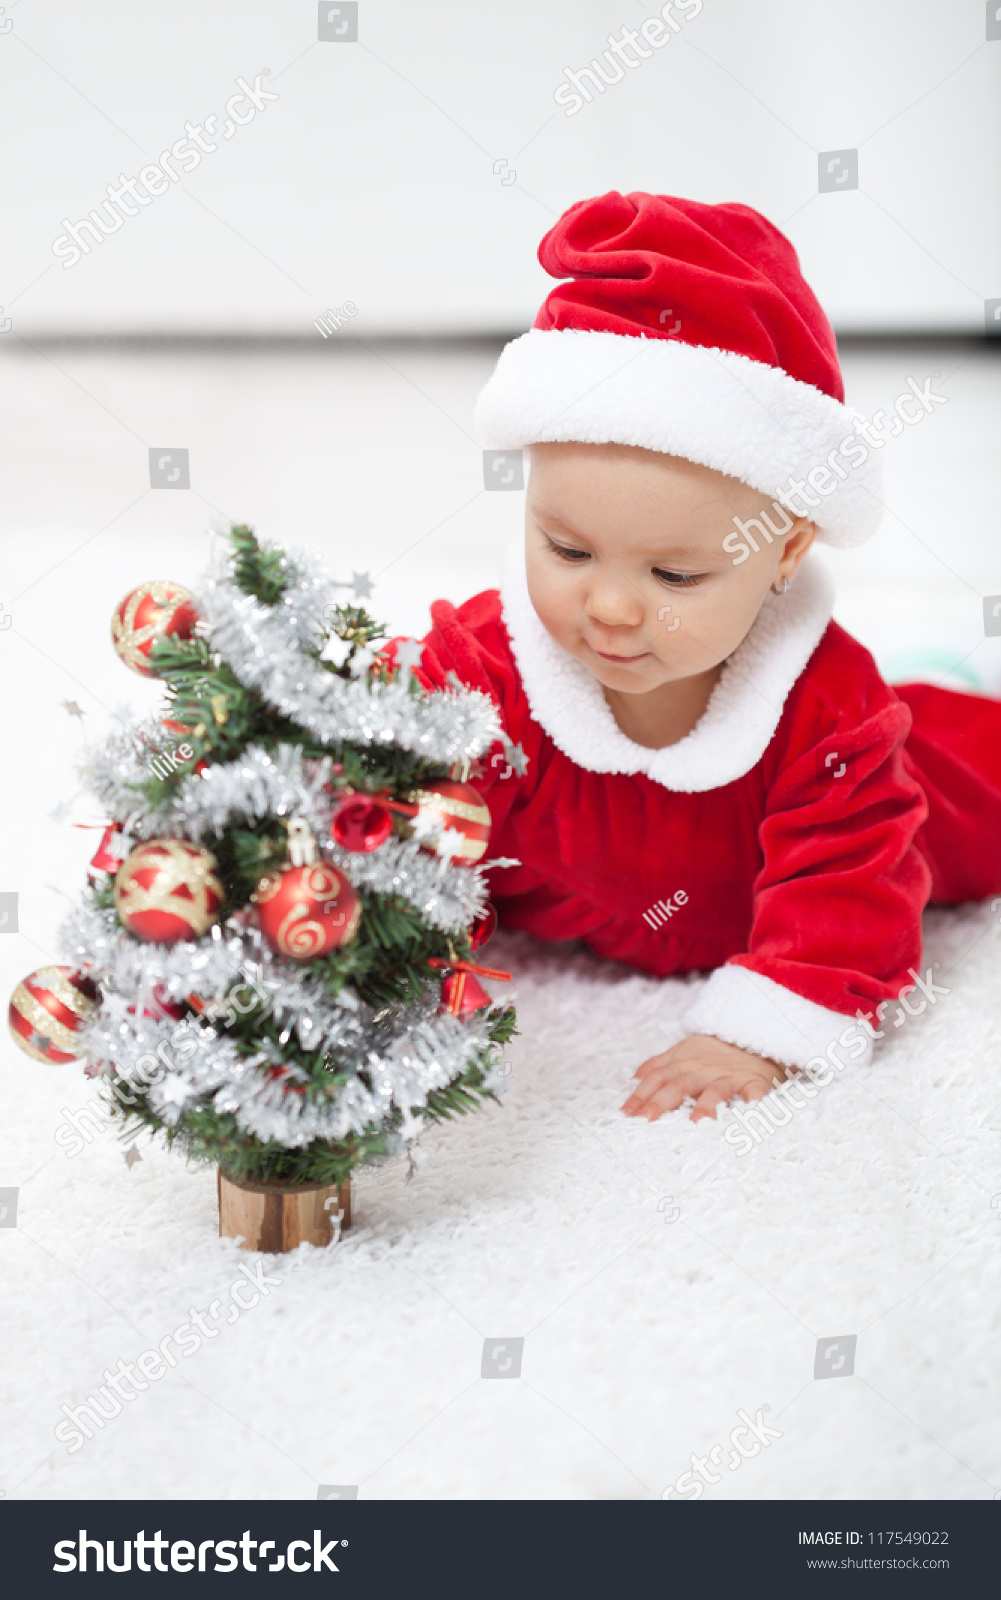 Find great deals on eBay for baby girl santa outfit. Shop with confidence.